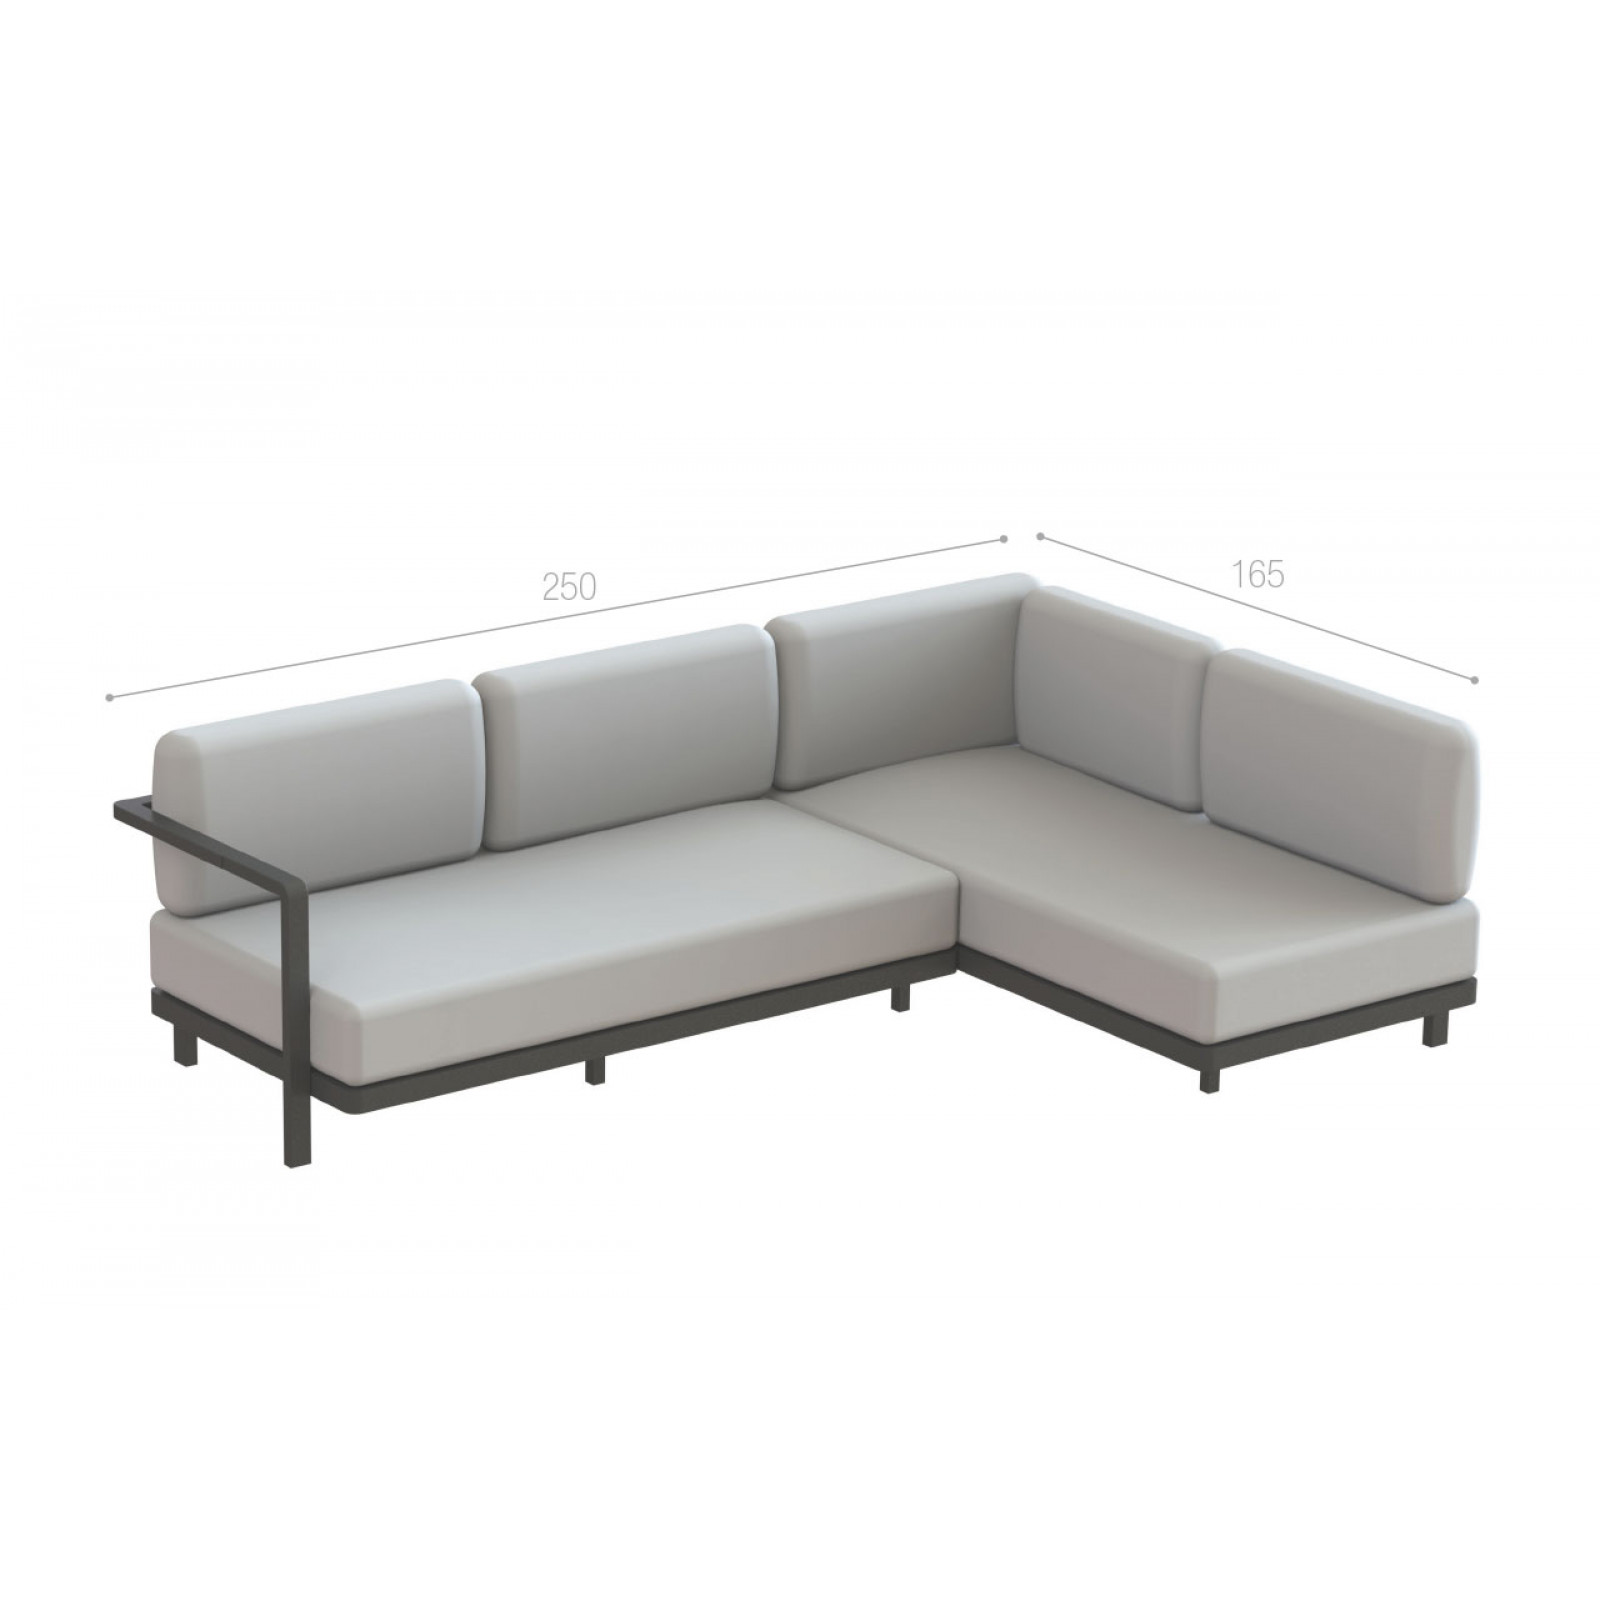 Alura Lounge Ecksofa 250 cm links